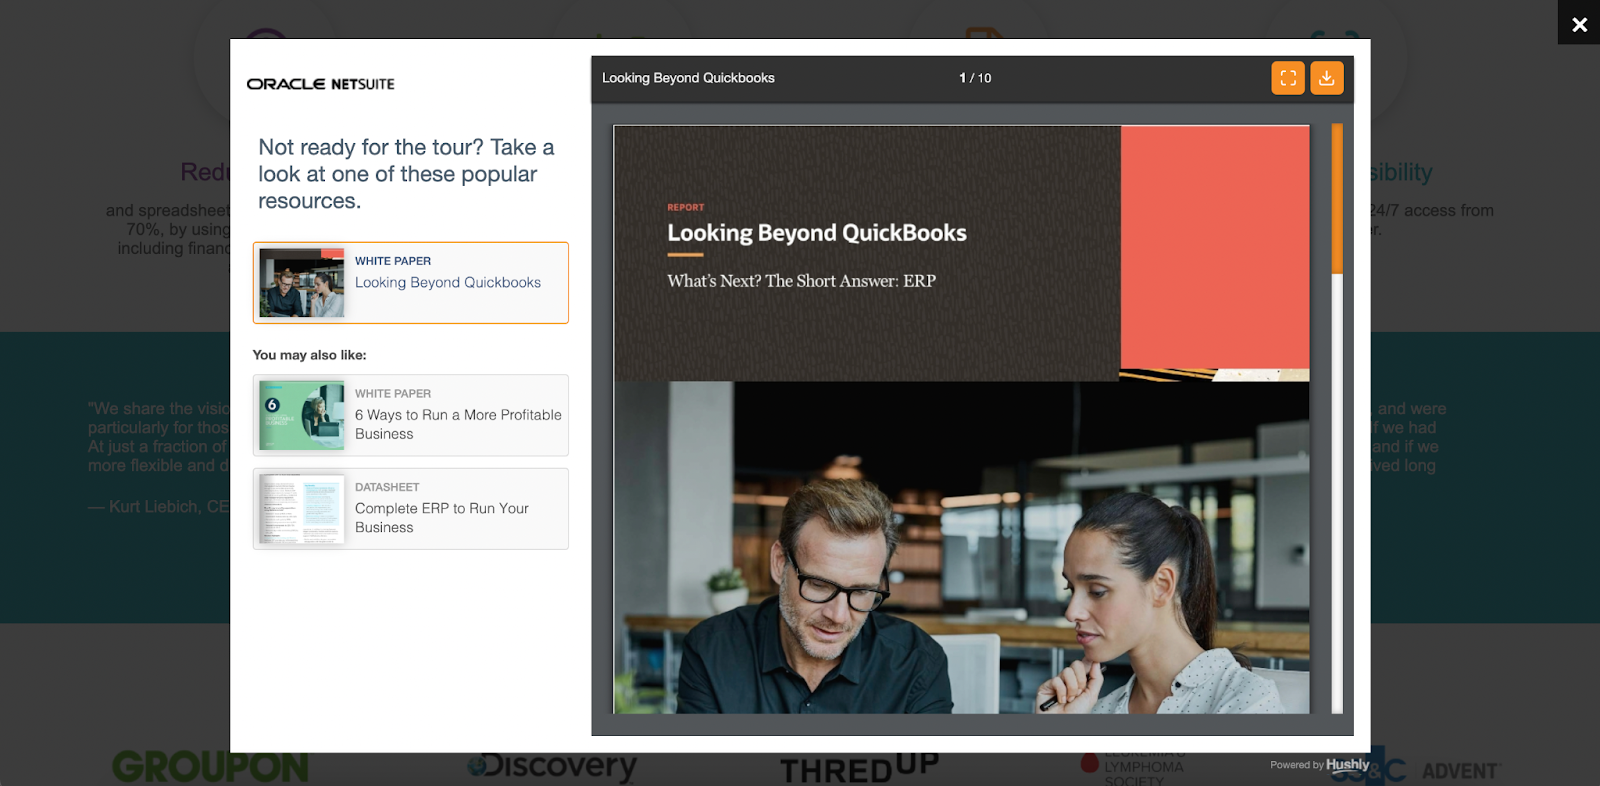 B2B landing pages - netsuite's popup